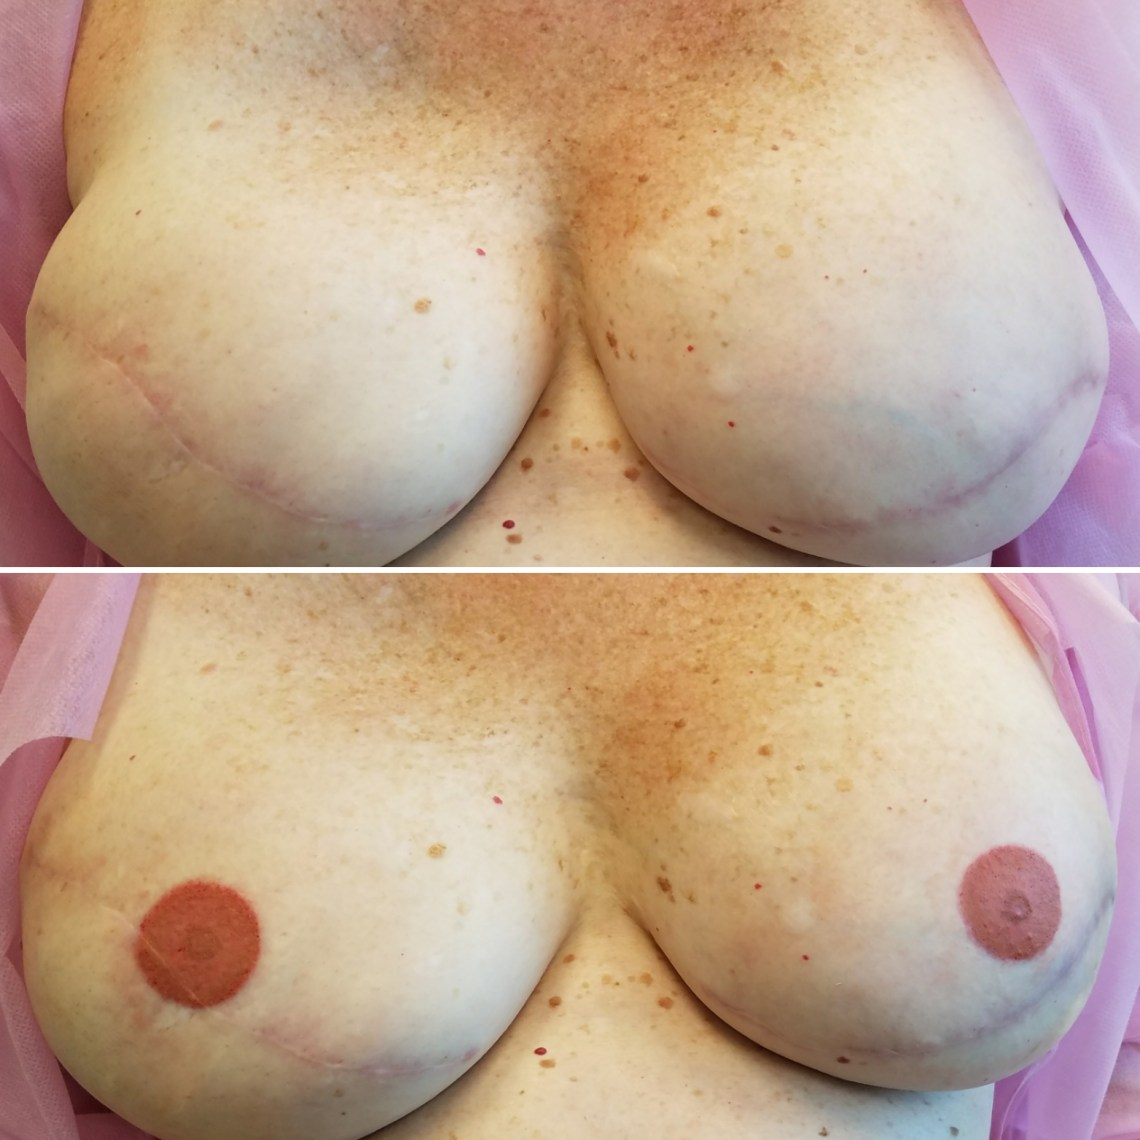 areola tattoo before and after